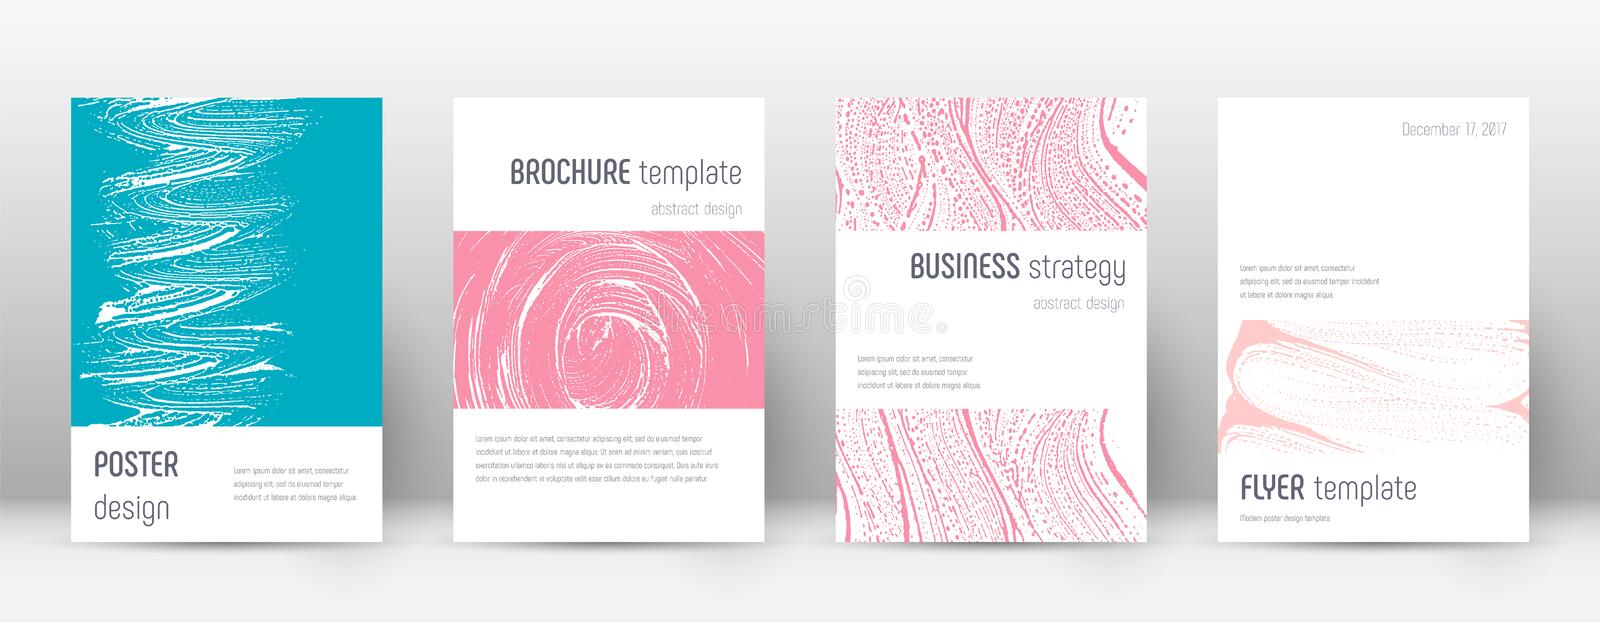 Cover page design template. Minimalistic brochure. Layout. Classy trendy abstract cover page. Pink and blue grunge texture background. Fetching poster vector illustration